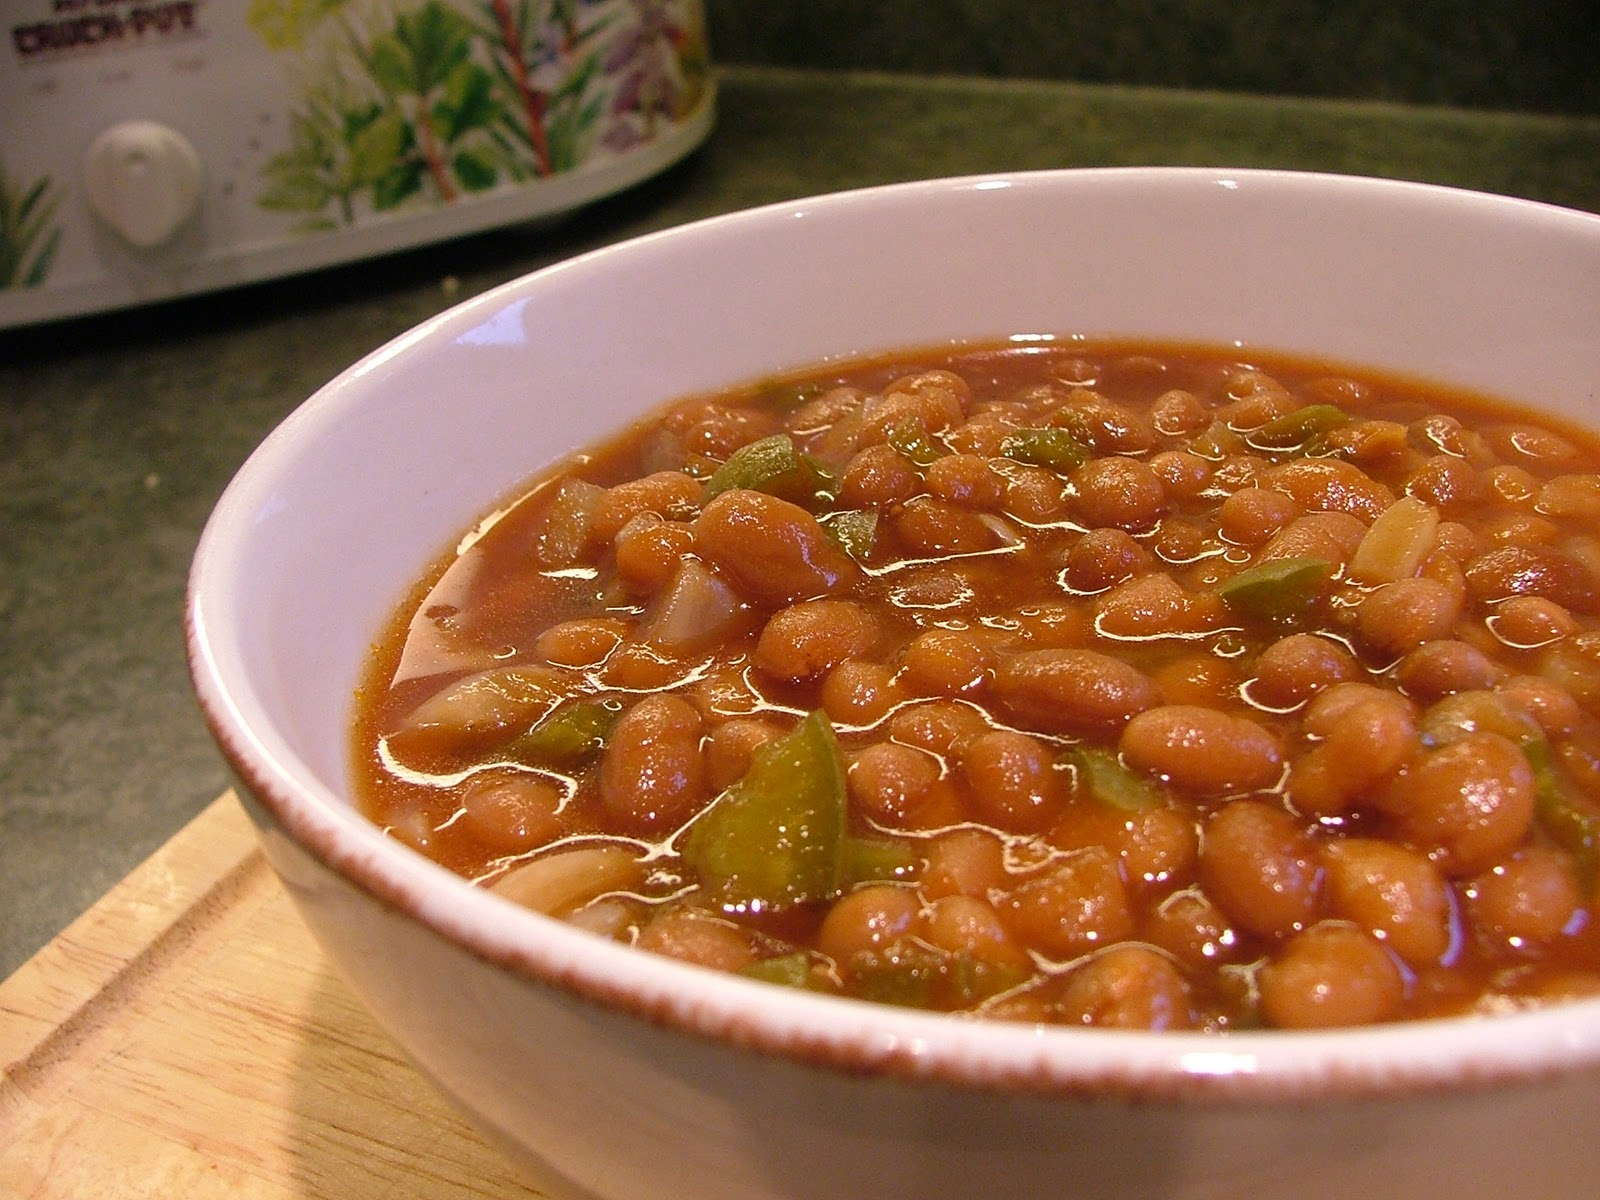 Baked beans slowly cooked with chopped green bell peppers and onions ...